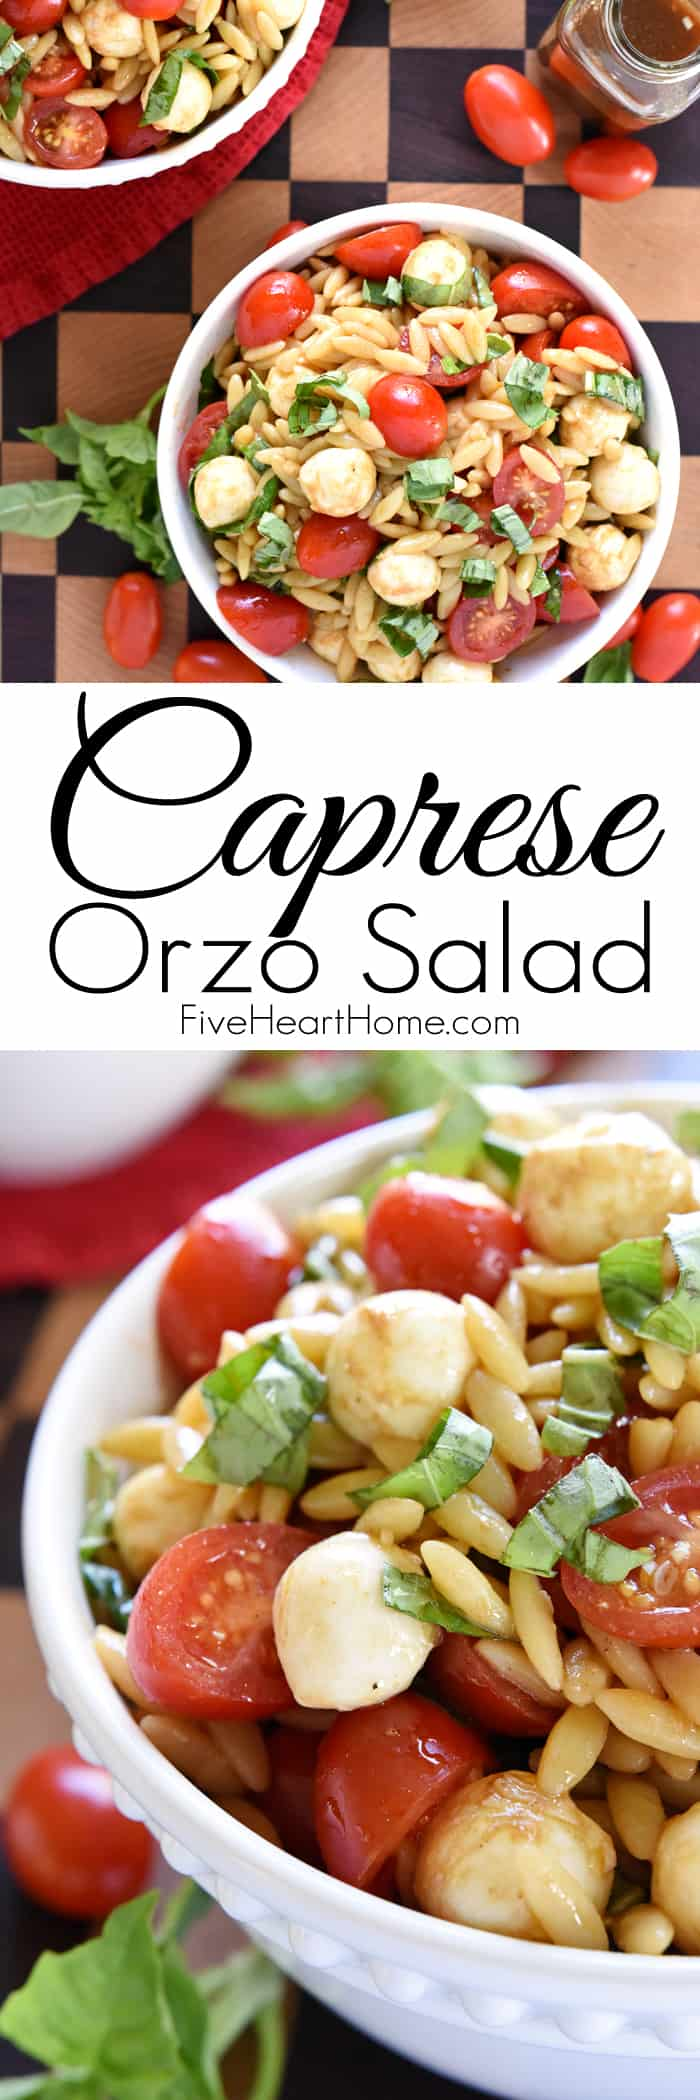 Orzo Salad is a vibrant summer pasta salad featuring juicy tomatoes ...